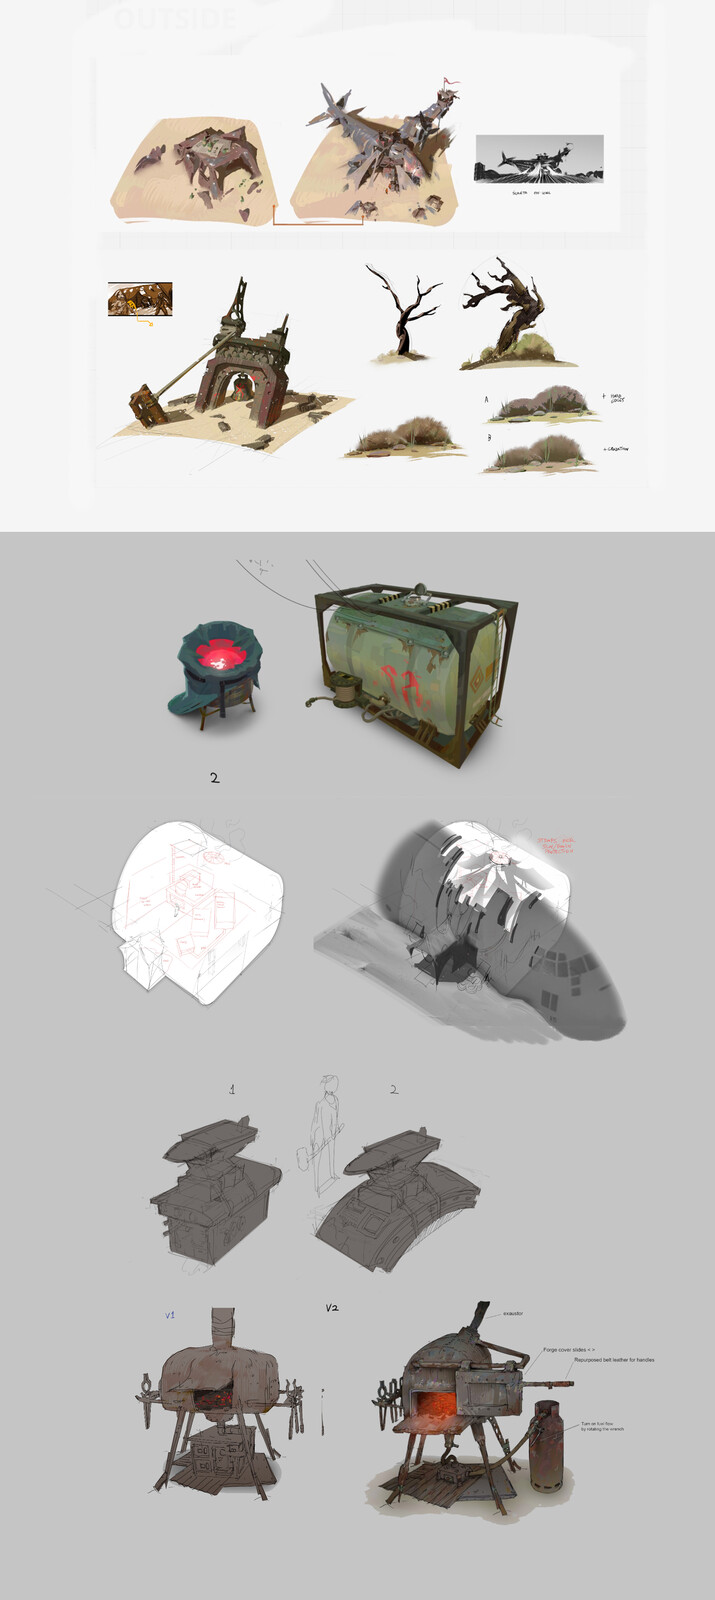 Some initial ideas by Yan Kyohara and art directed by me and Isabela Litger